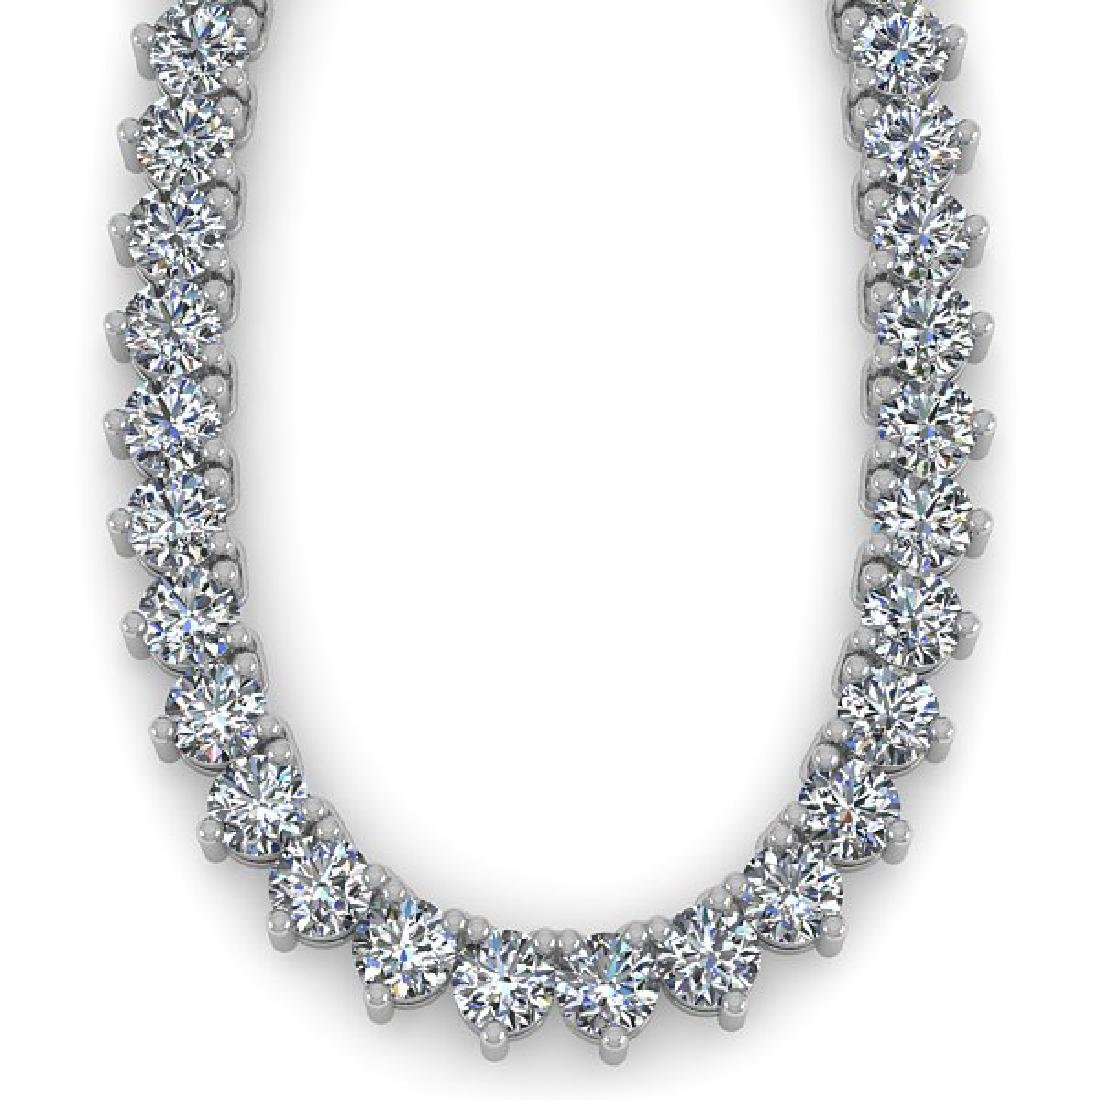 57 CTW Solitaire Certified SI Diamond Necklace 18K - 2